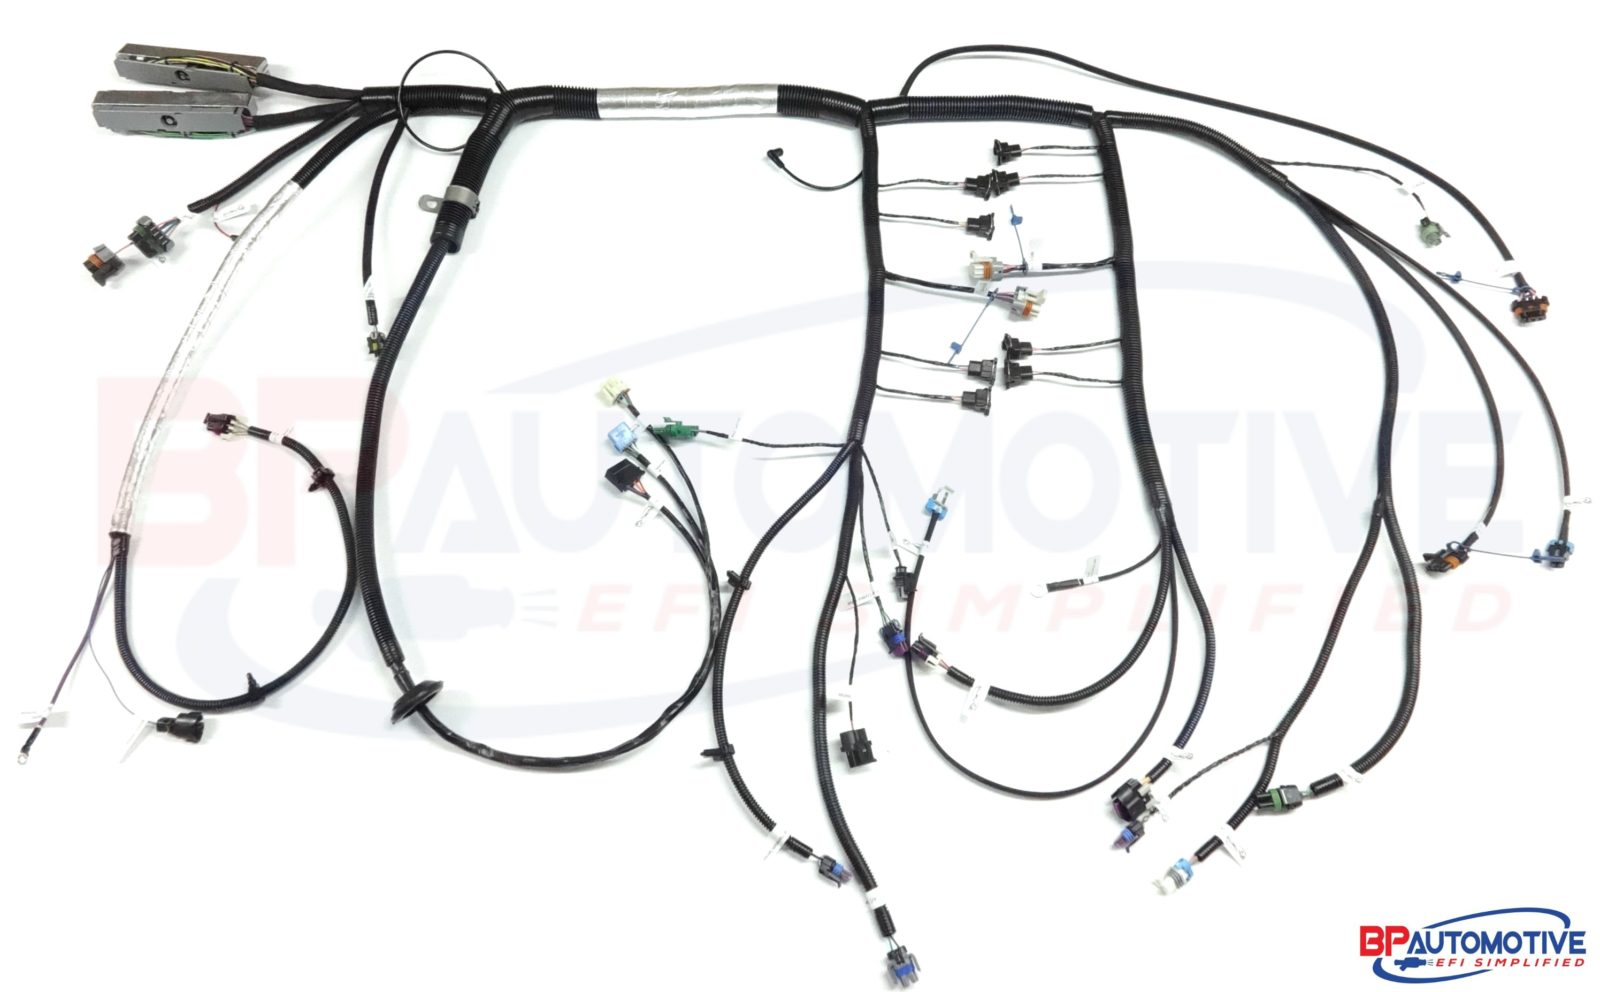 Lt1 F Body Plug And Play 24x Conversion Harness With